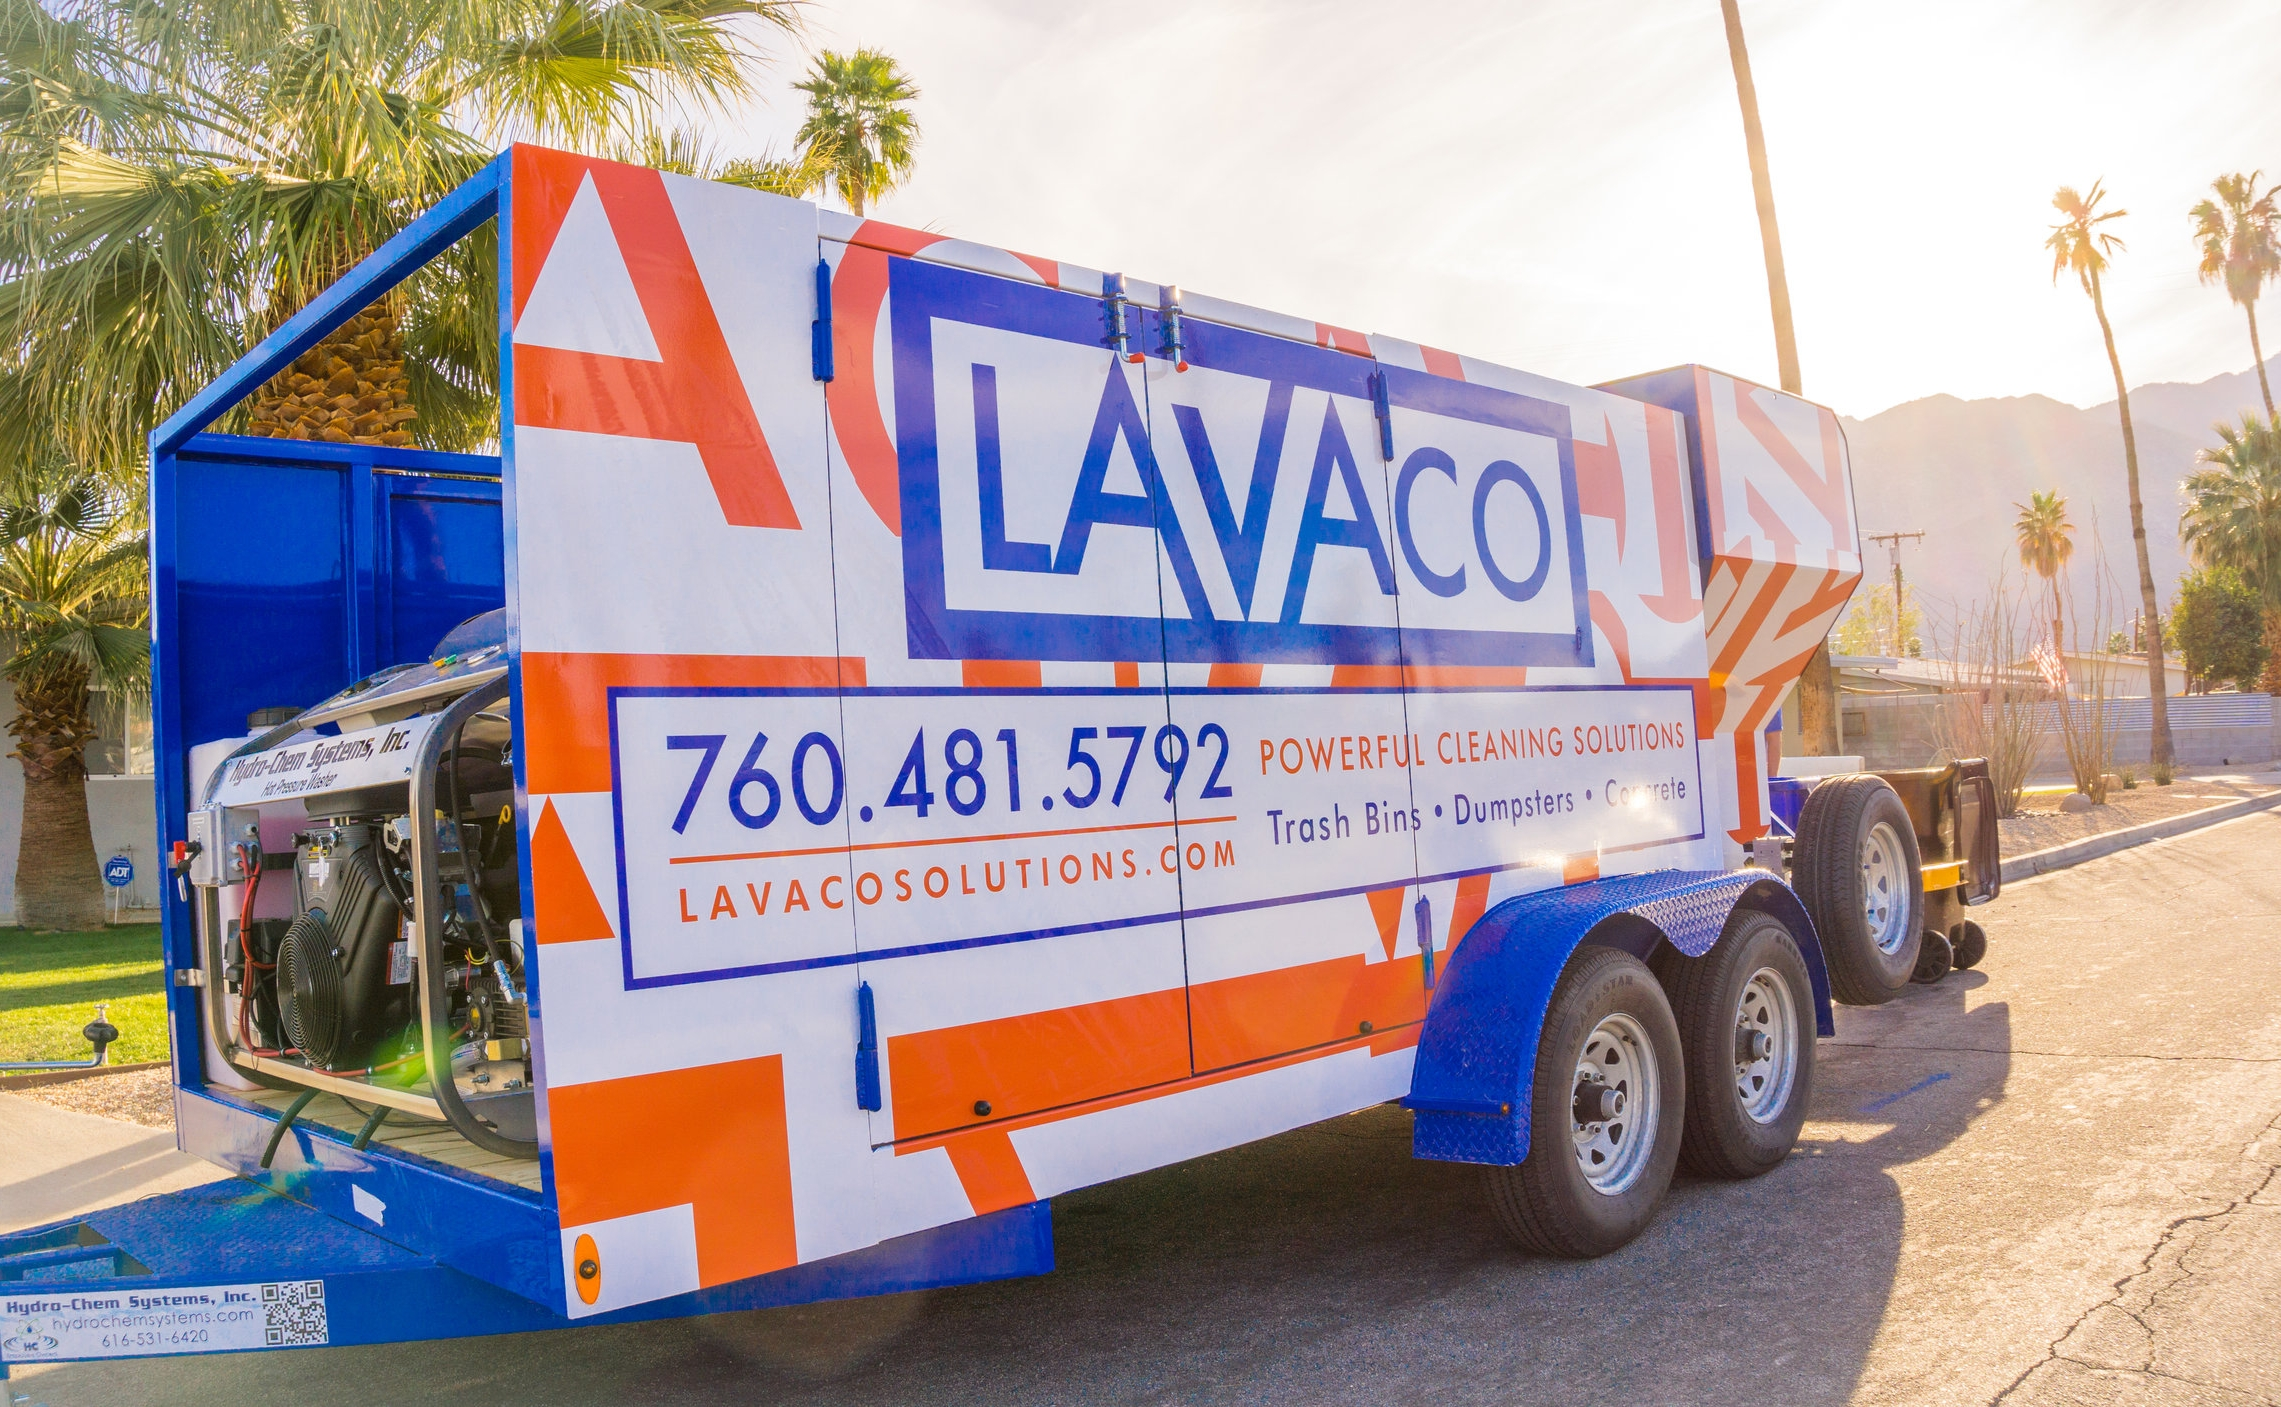 Why LAVACO? - • Affordable pricing plans.• Seasonal or year-round service.• Locally owned & operated.• Licensed and Insured.• Convenient & hassle free.• Environmentally safe.